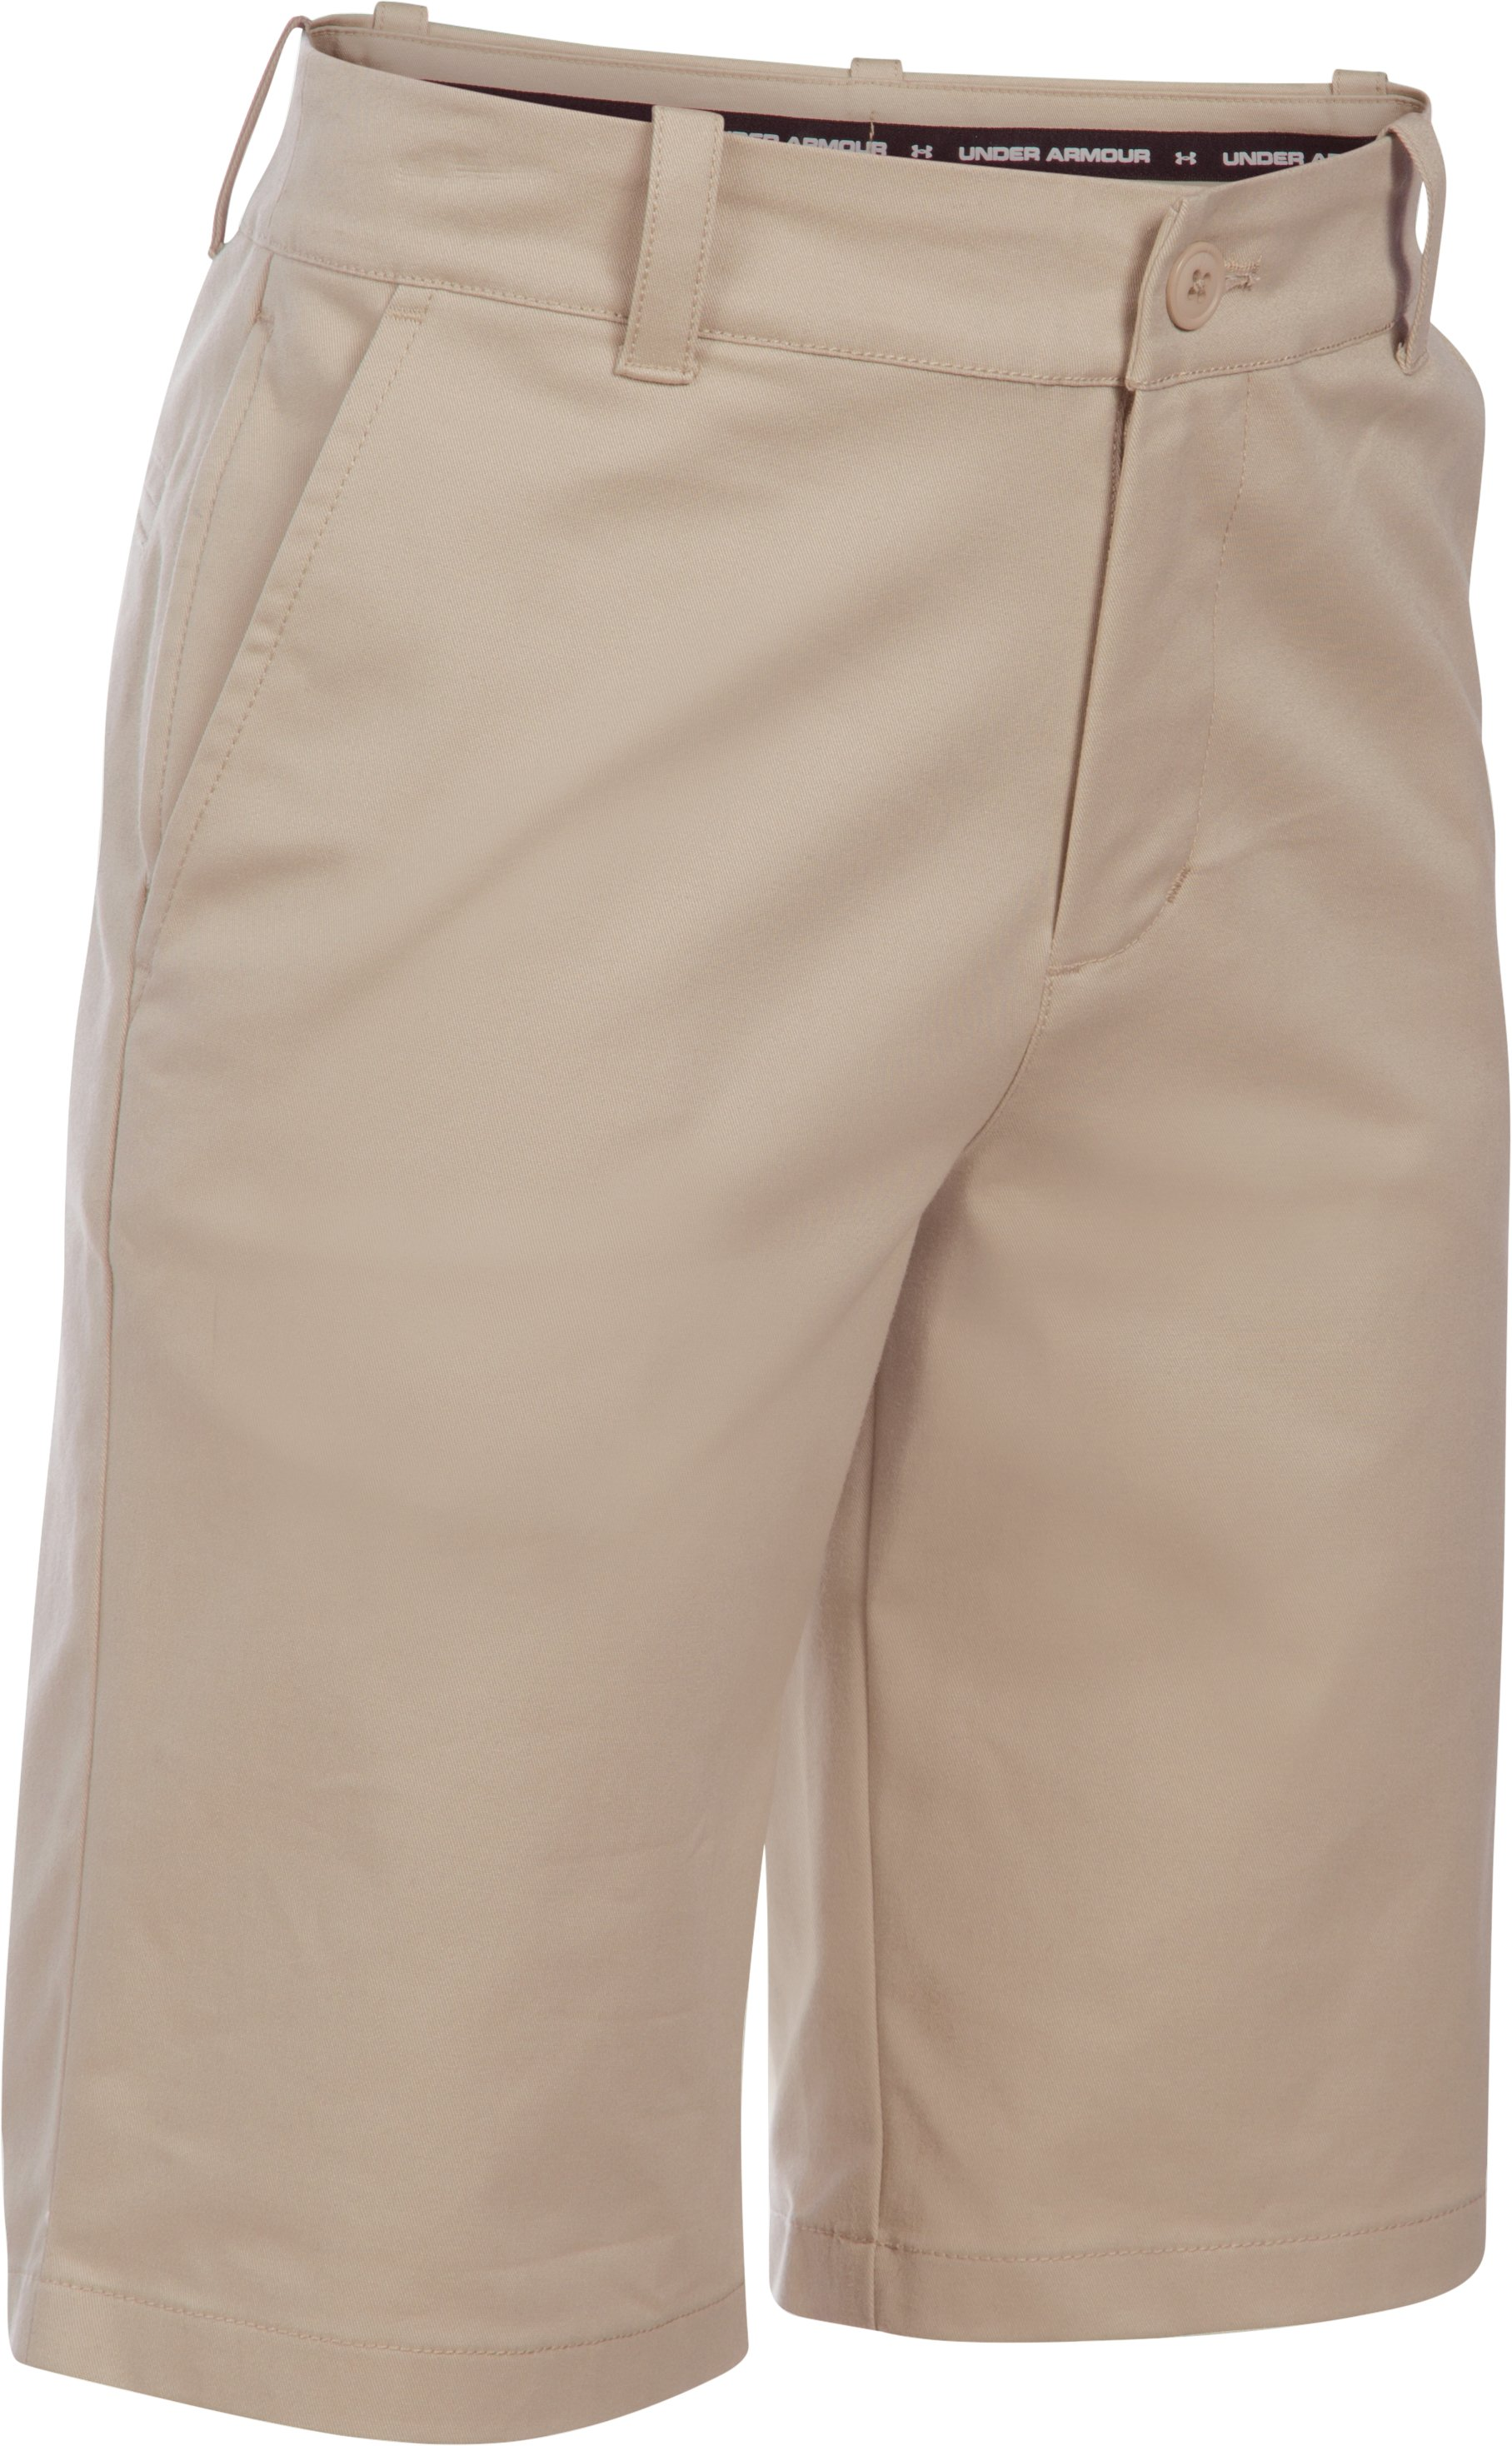 Boys' UA Uniform Chino Shorts – Pre-School, Desert Sand